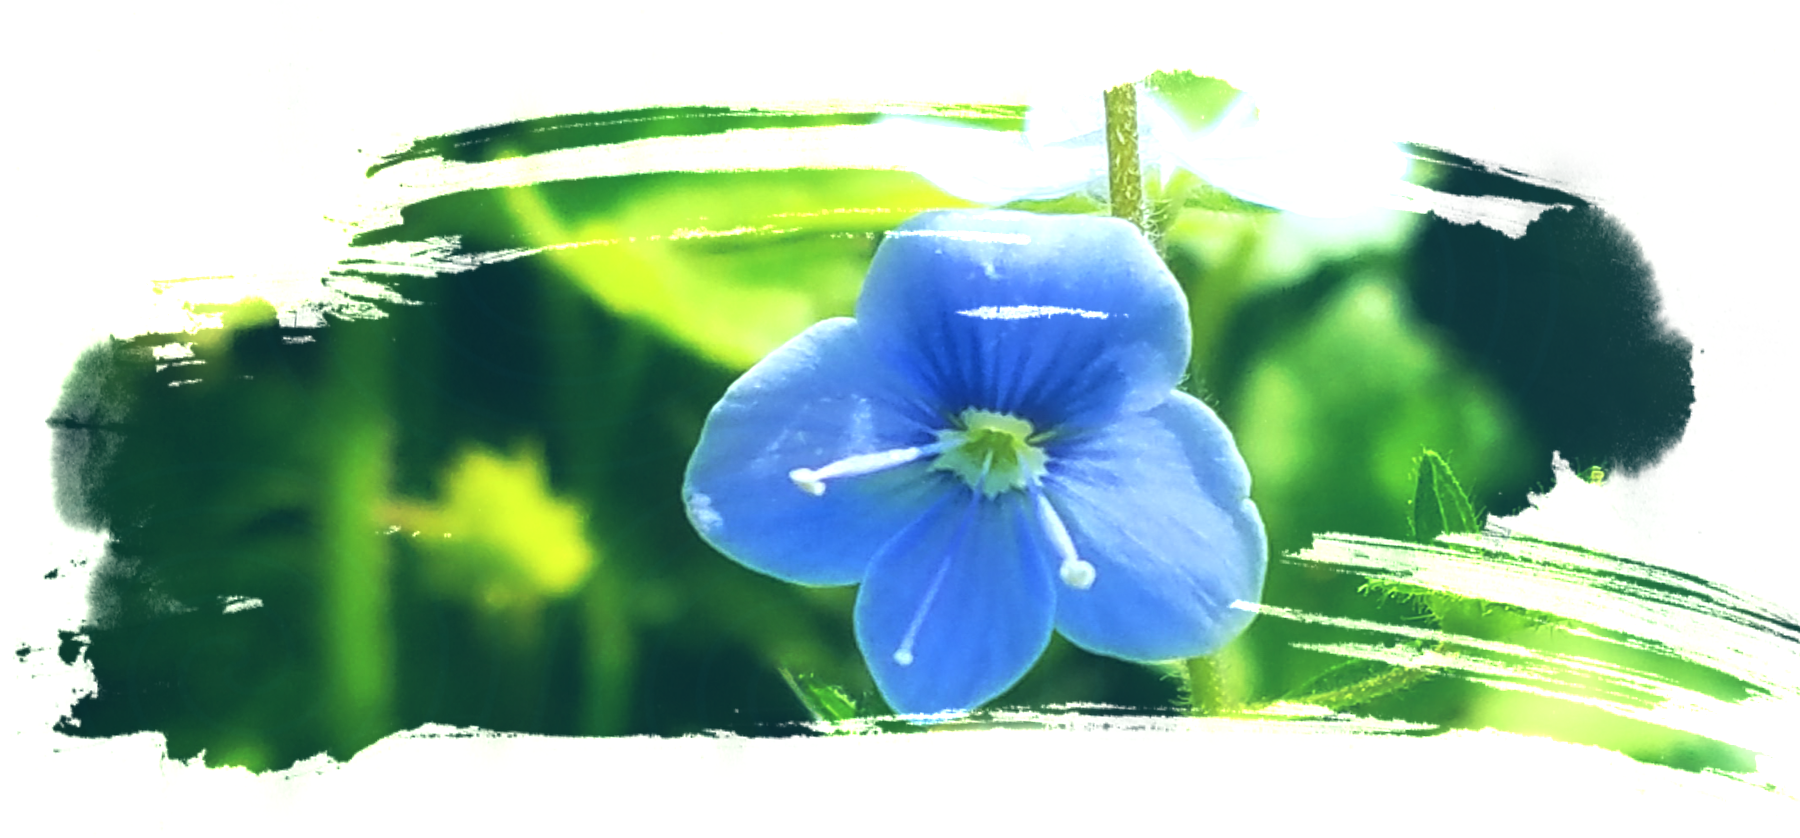 a brushstroke shaped image with a close up picture of a four petaled periwinkle colored veronica flower ad a bright green background of blurred grass